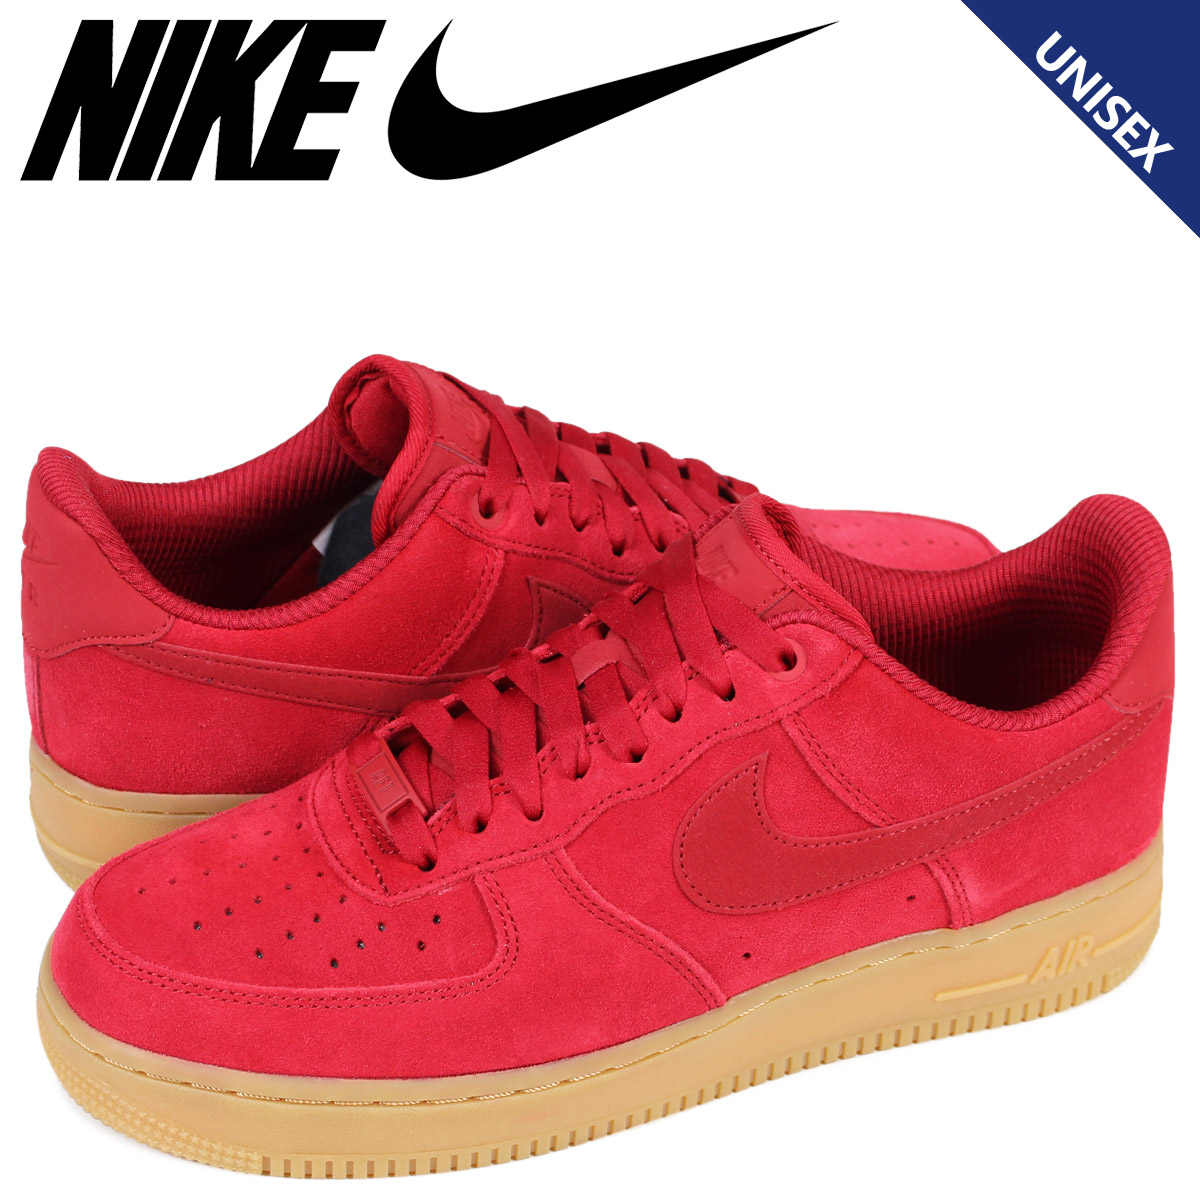 new styles 62392 0b308 Nike NIKE air force 1 07 lady s men s sneakers WMNS AIR FORCE 1 SE 896,184-601  red